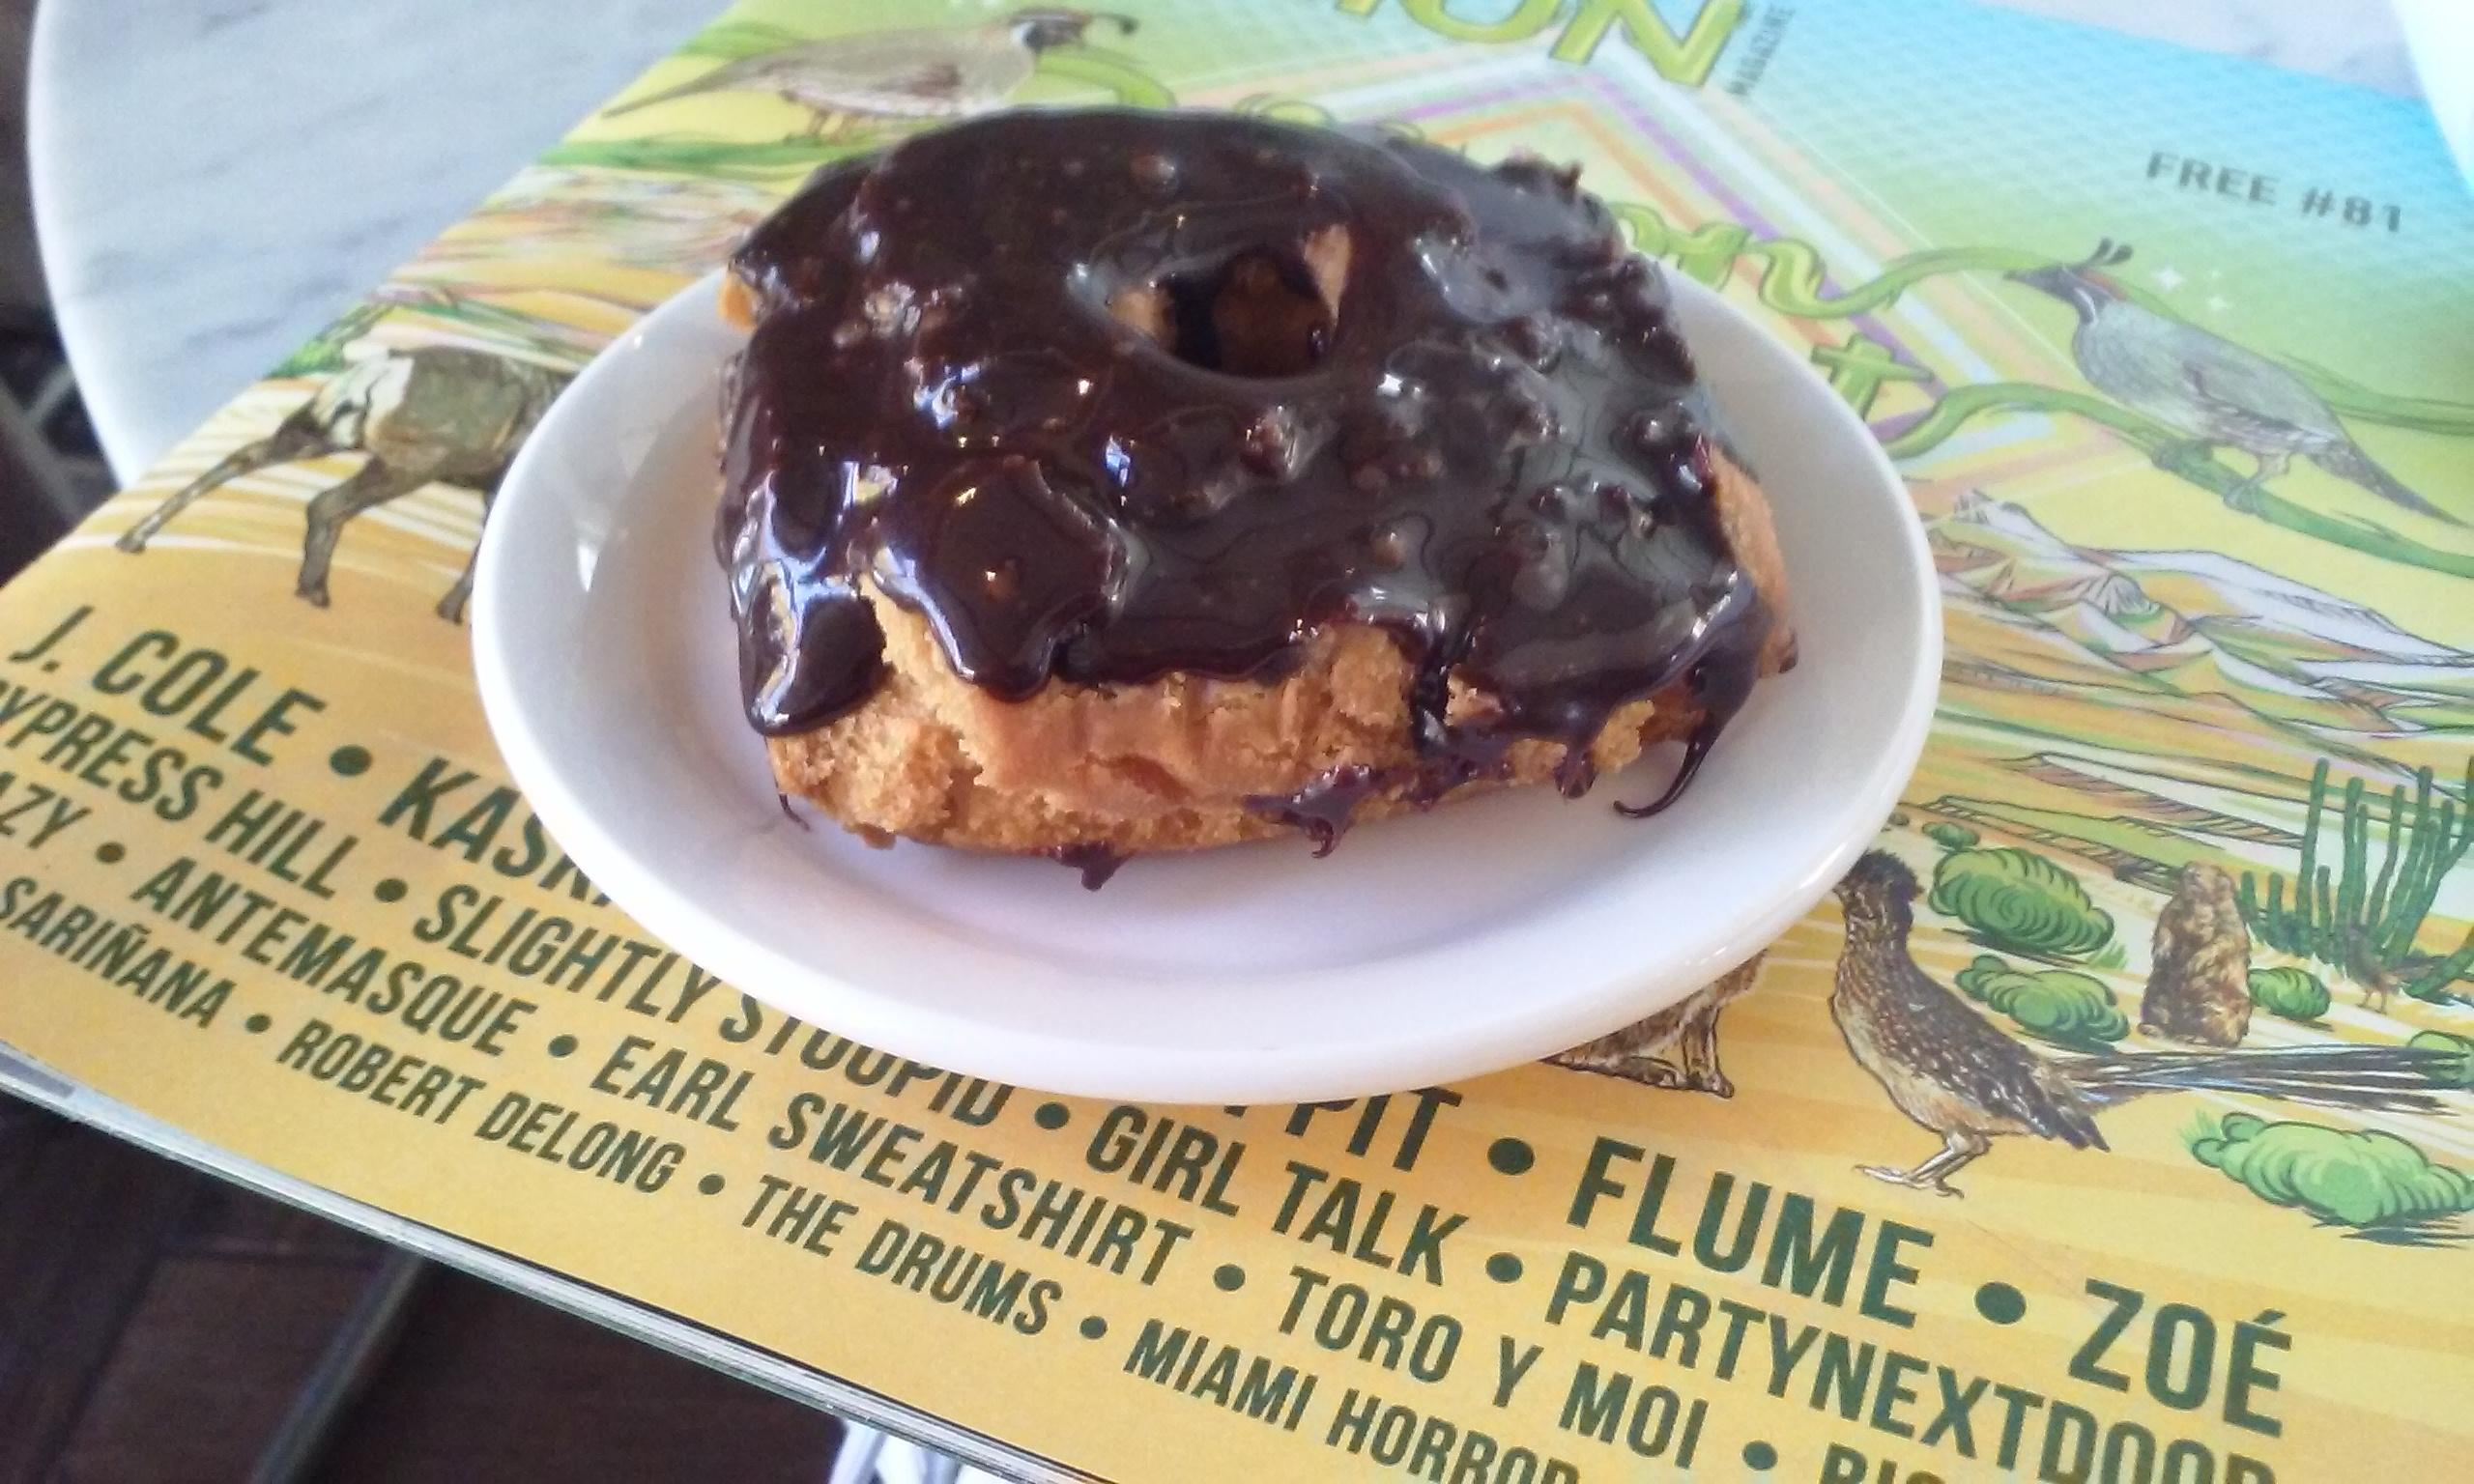 Fudge donut at Hillside Coffee